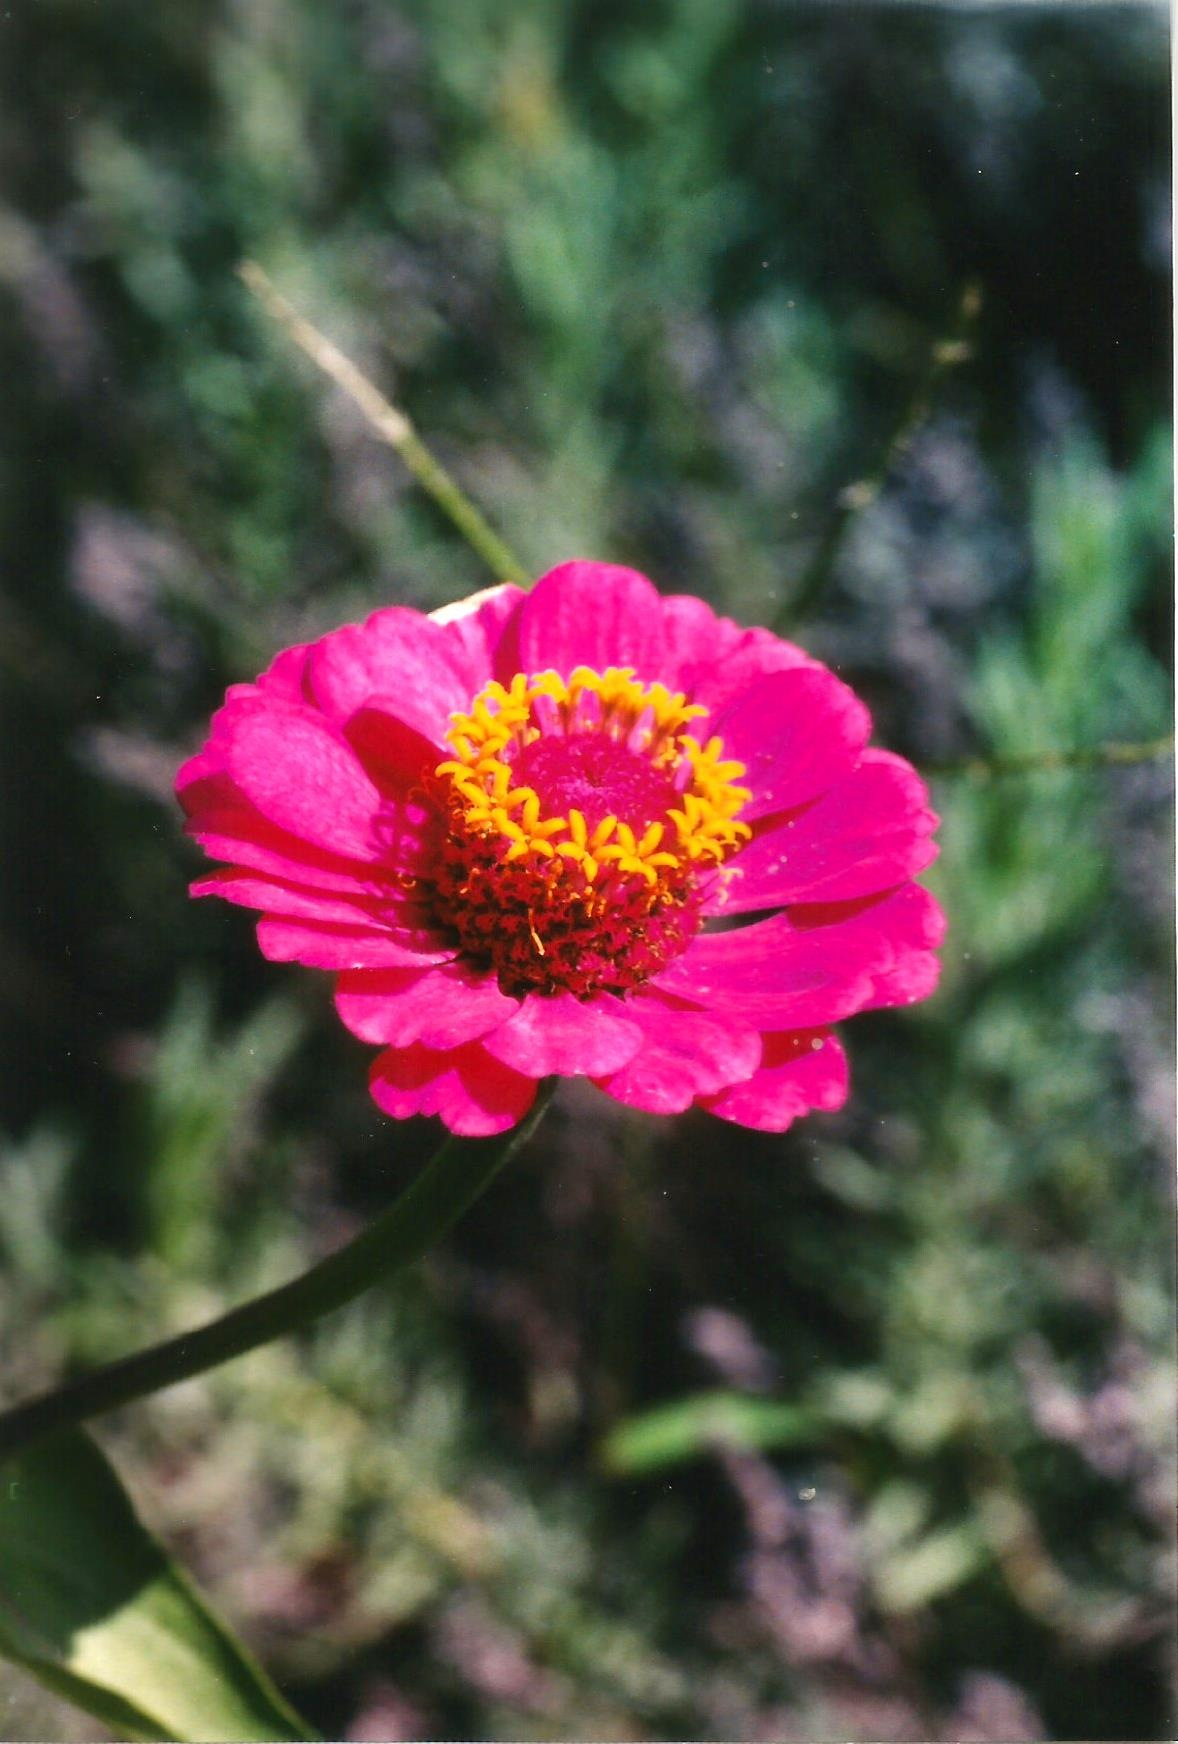 THE ZINNIA FLOWER by Hope Atwood Dayhoff